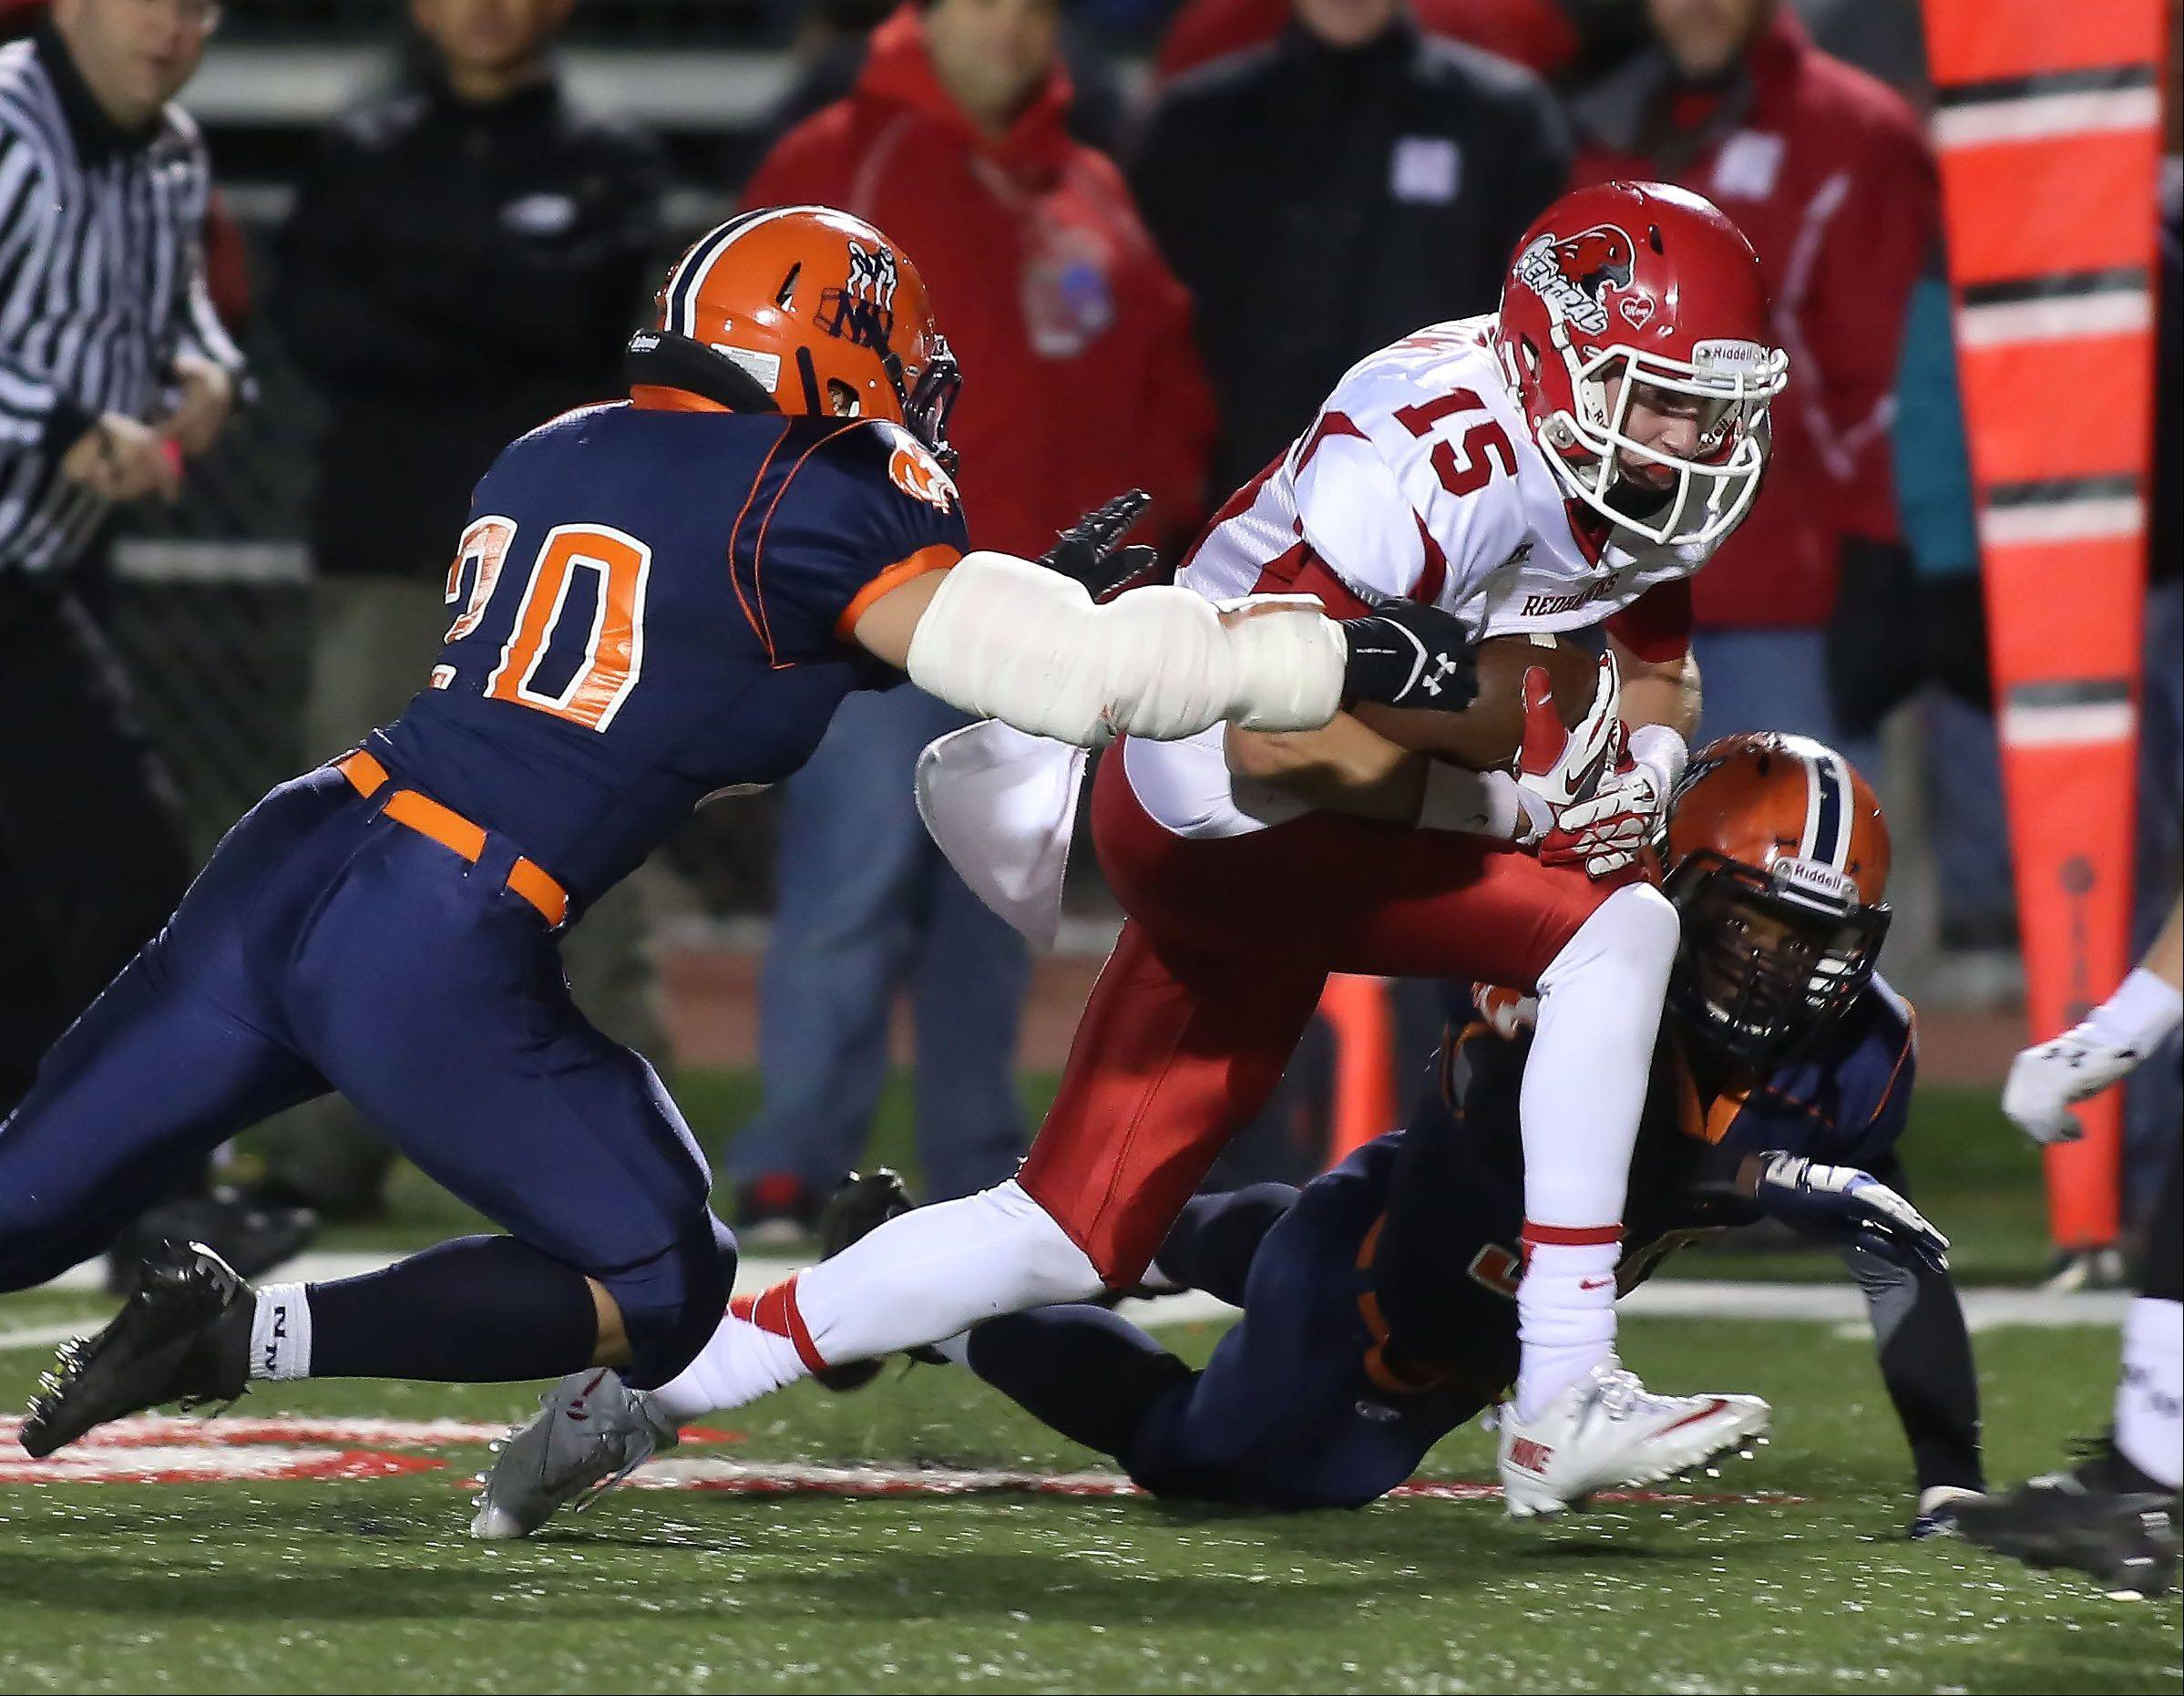 Michael Kolzow of Naperville Central moves the ball through the Naperville North defense.